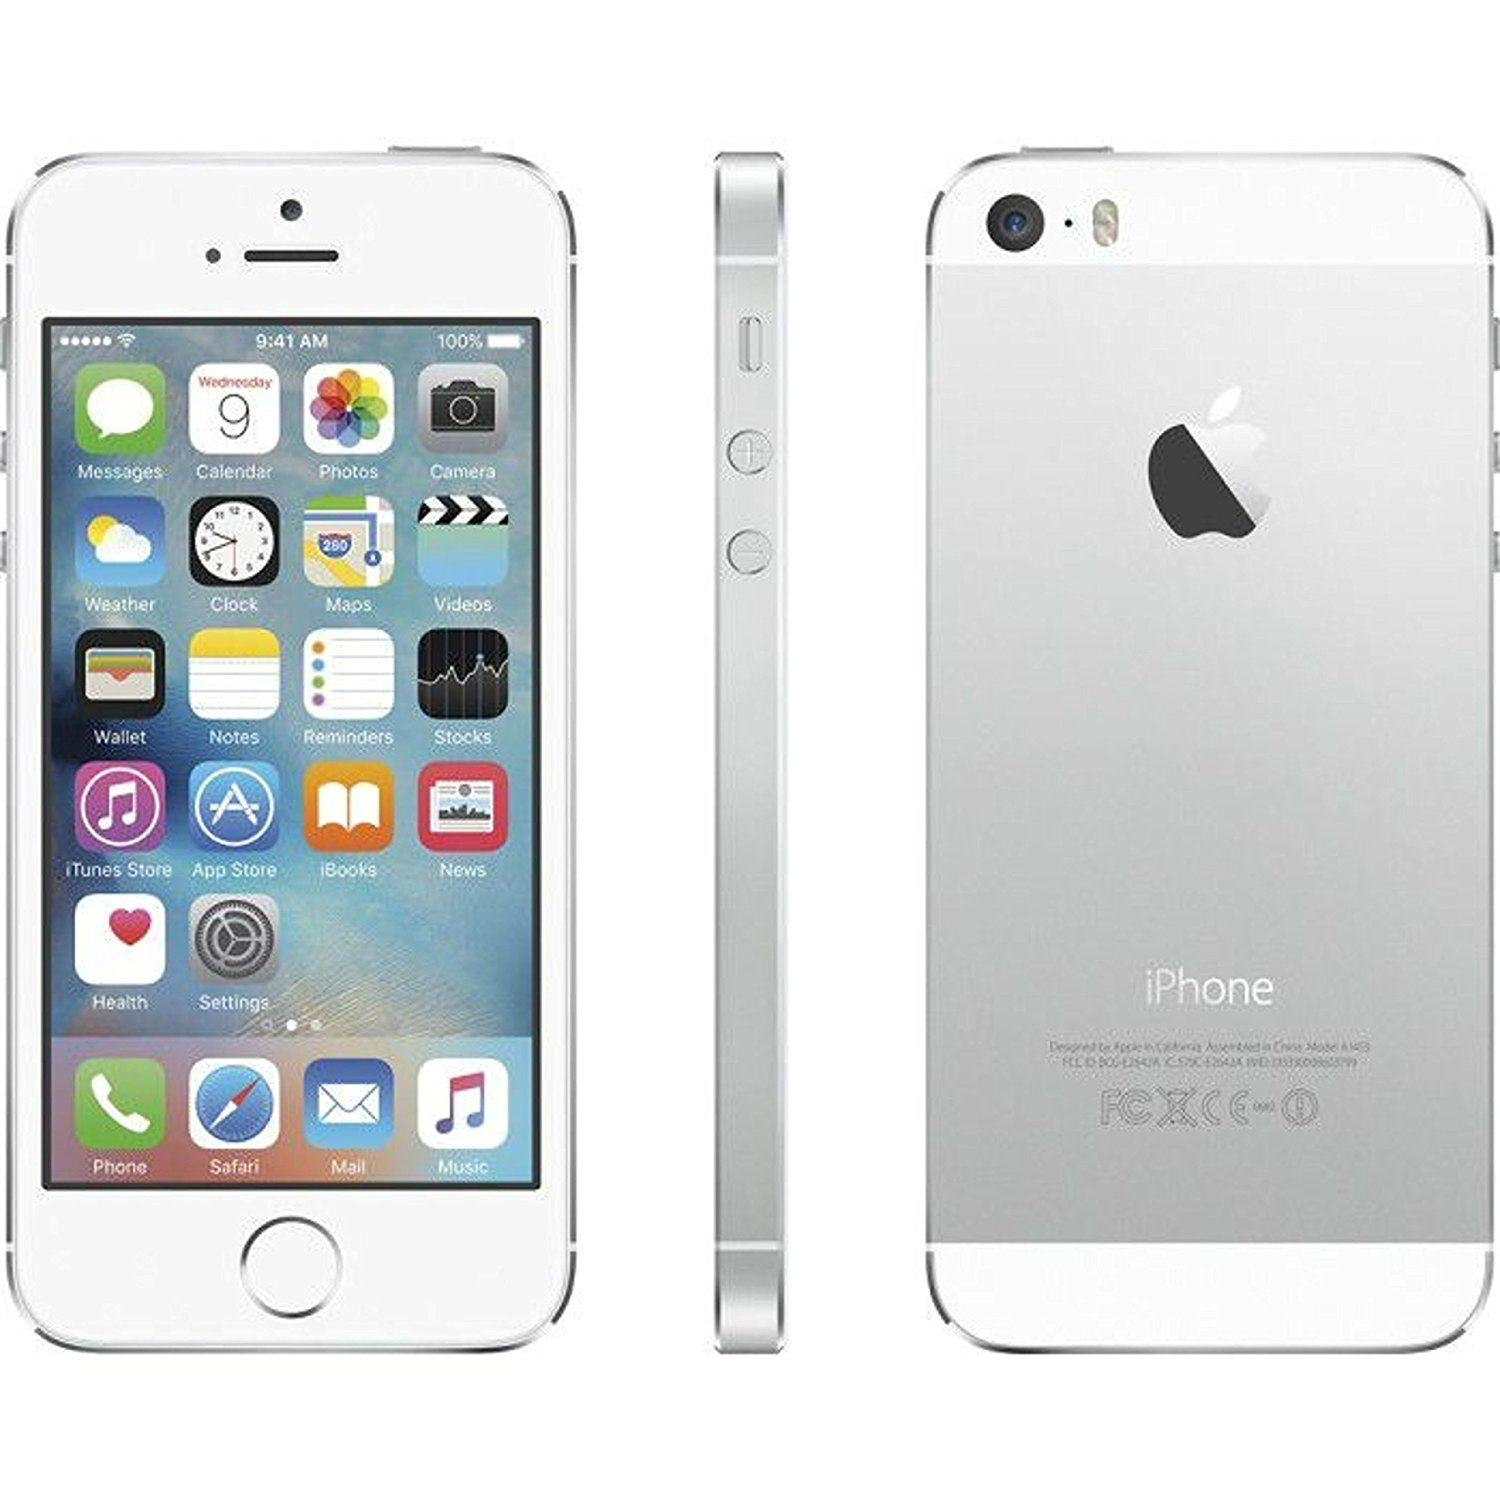 iphone 5s back apple iphone 5s for in jamaica jadeals 1398